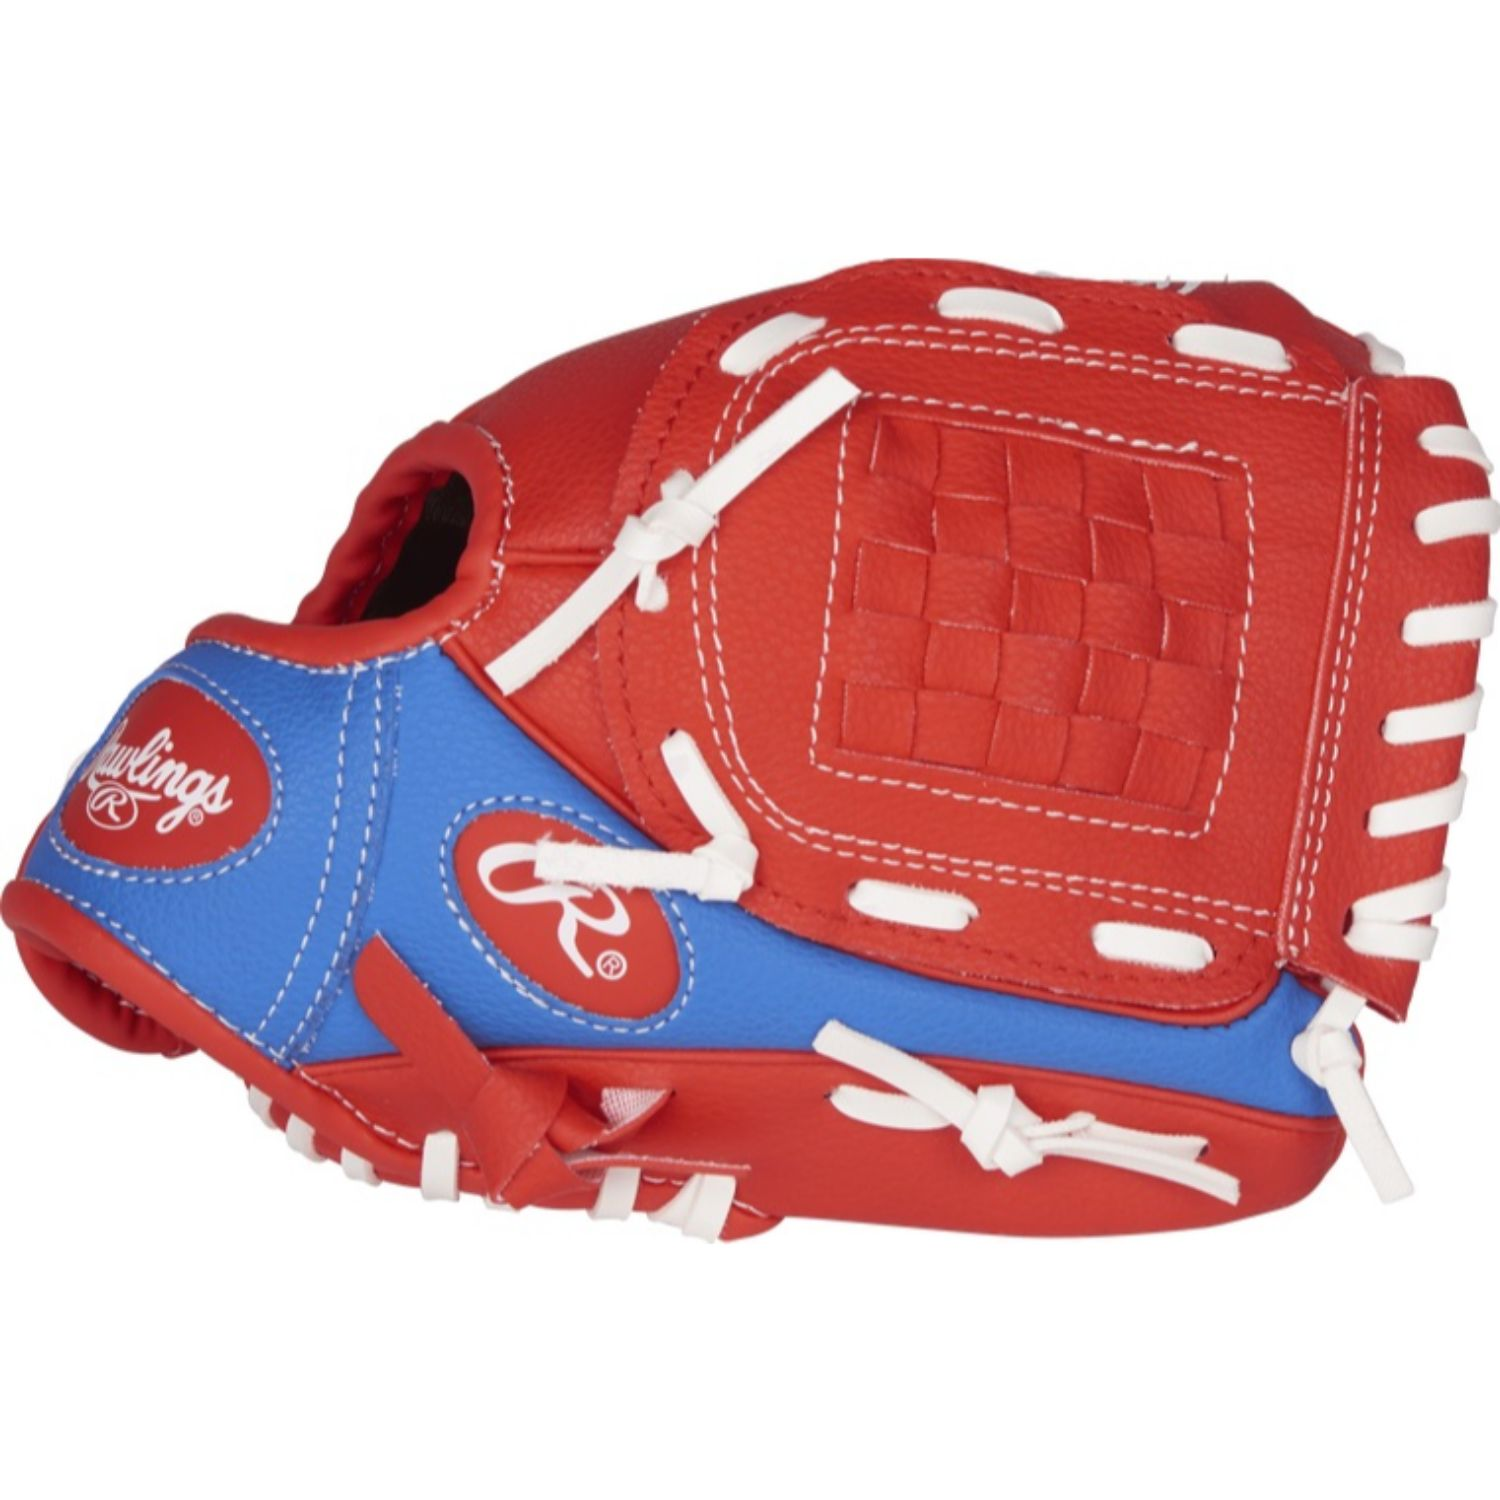 Rawlings Players 9 In Youth Softball Baseball Glove RH